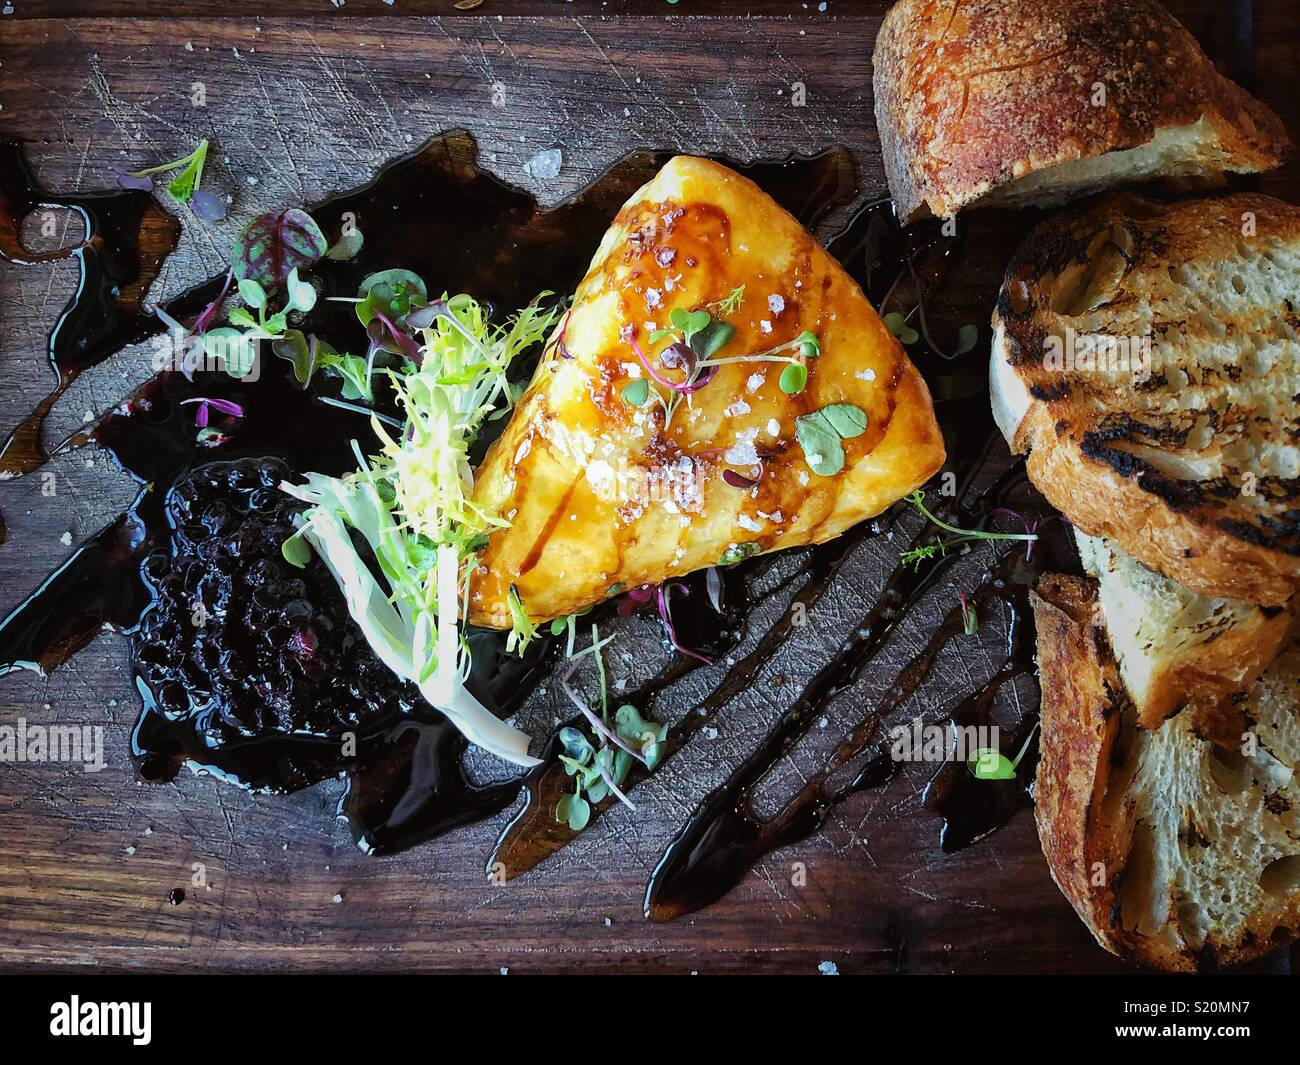 Baked brie wedge on a dark wood serving board with toasted bread and wild blueberry compote - Stock Image